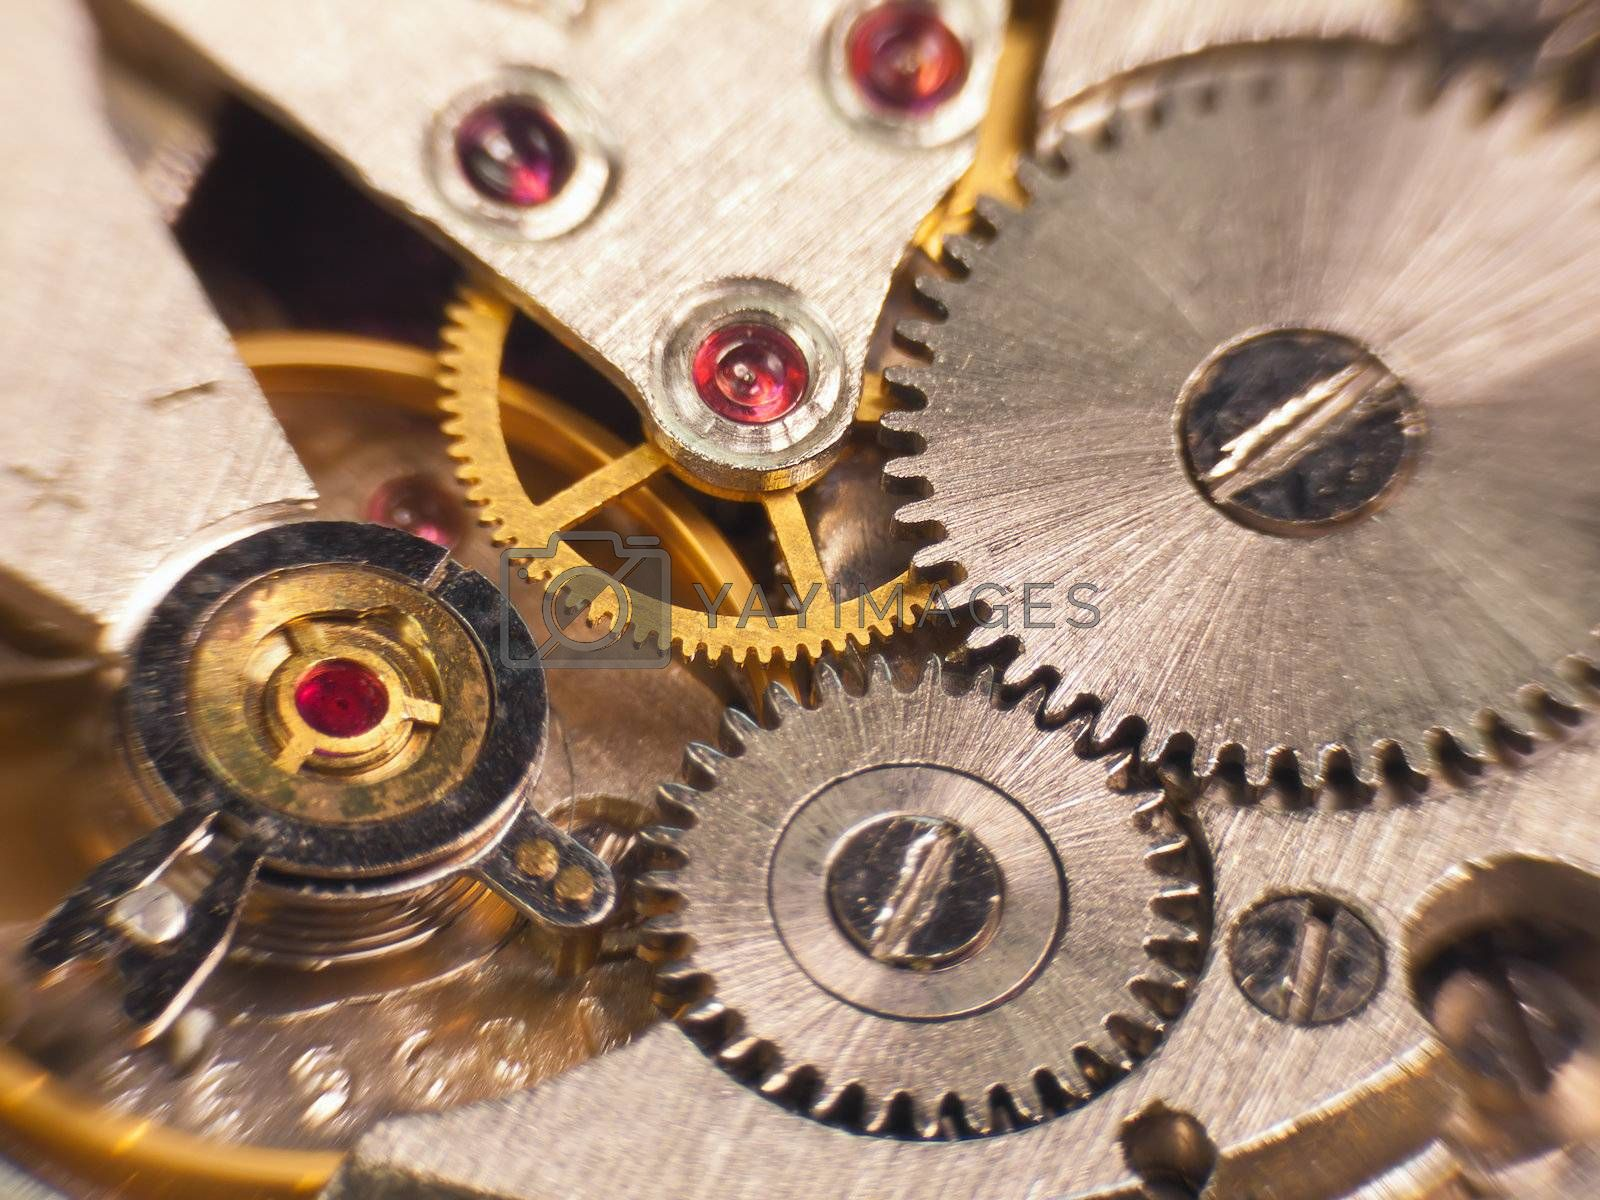 Macro photo of the mechanism of a watch soft focus